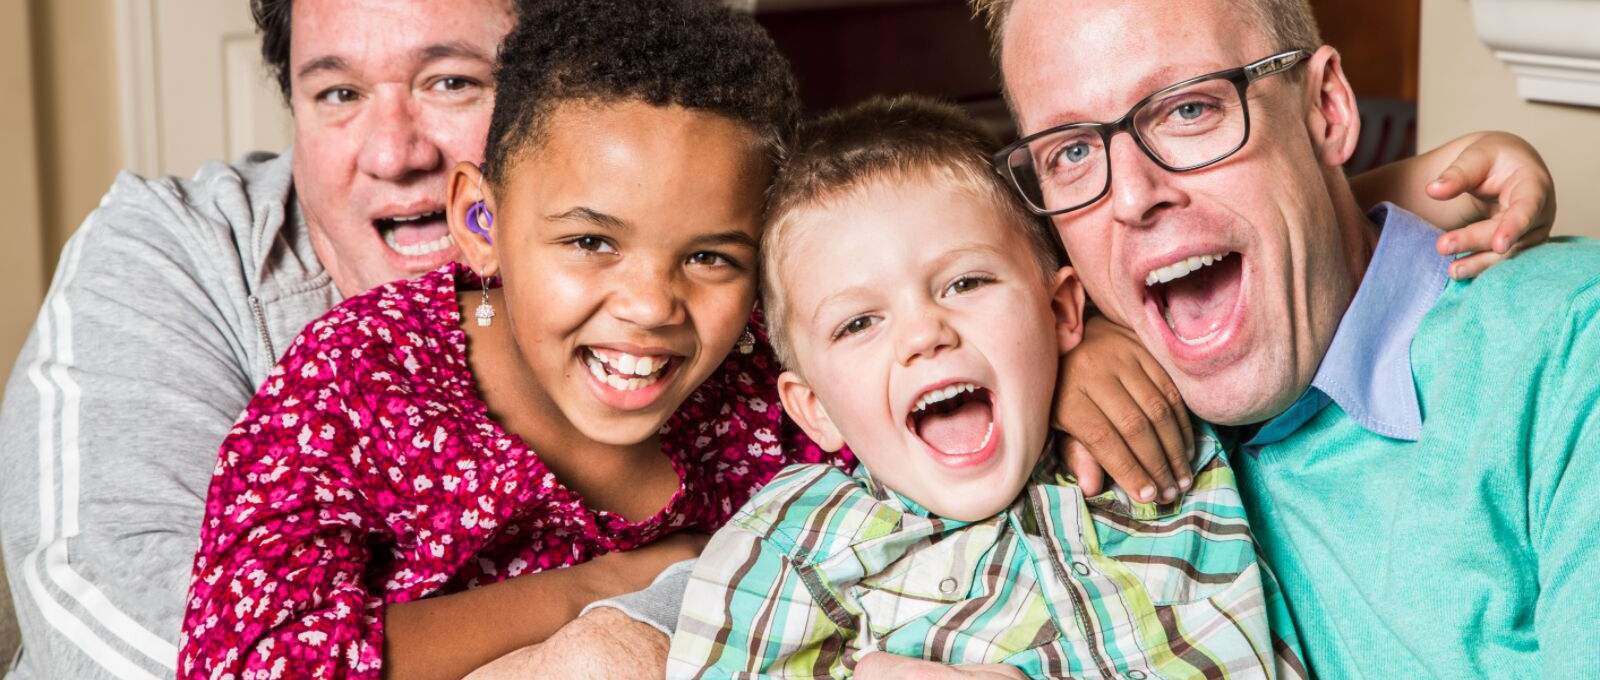 Dads spending time creating emotional memories with their kids